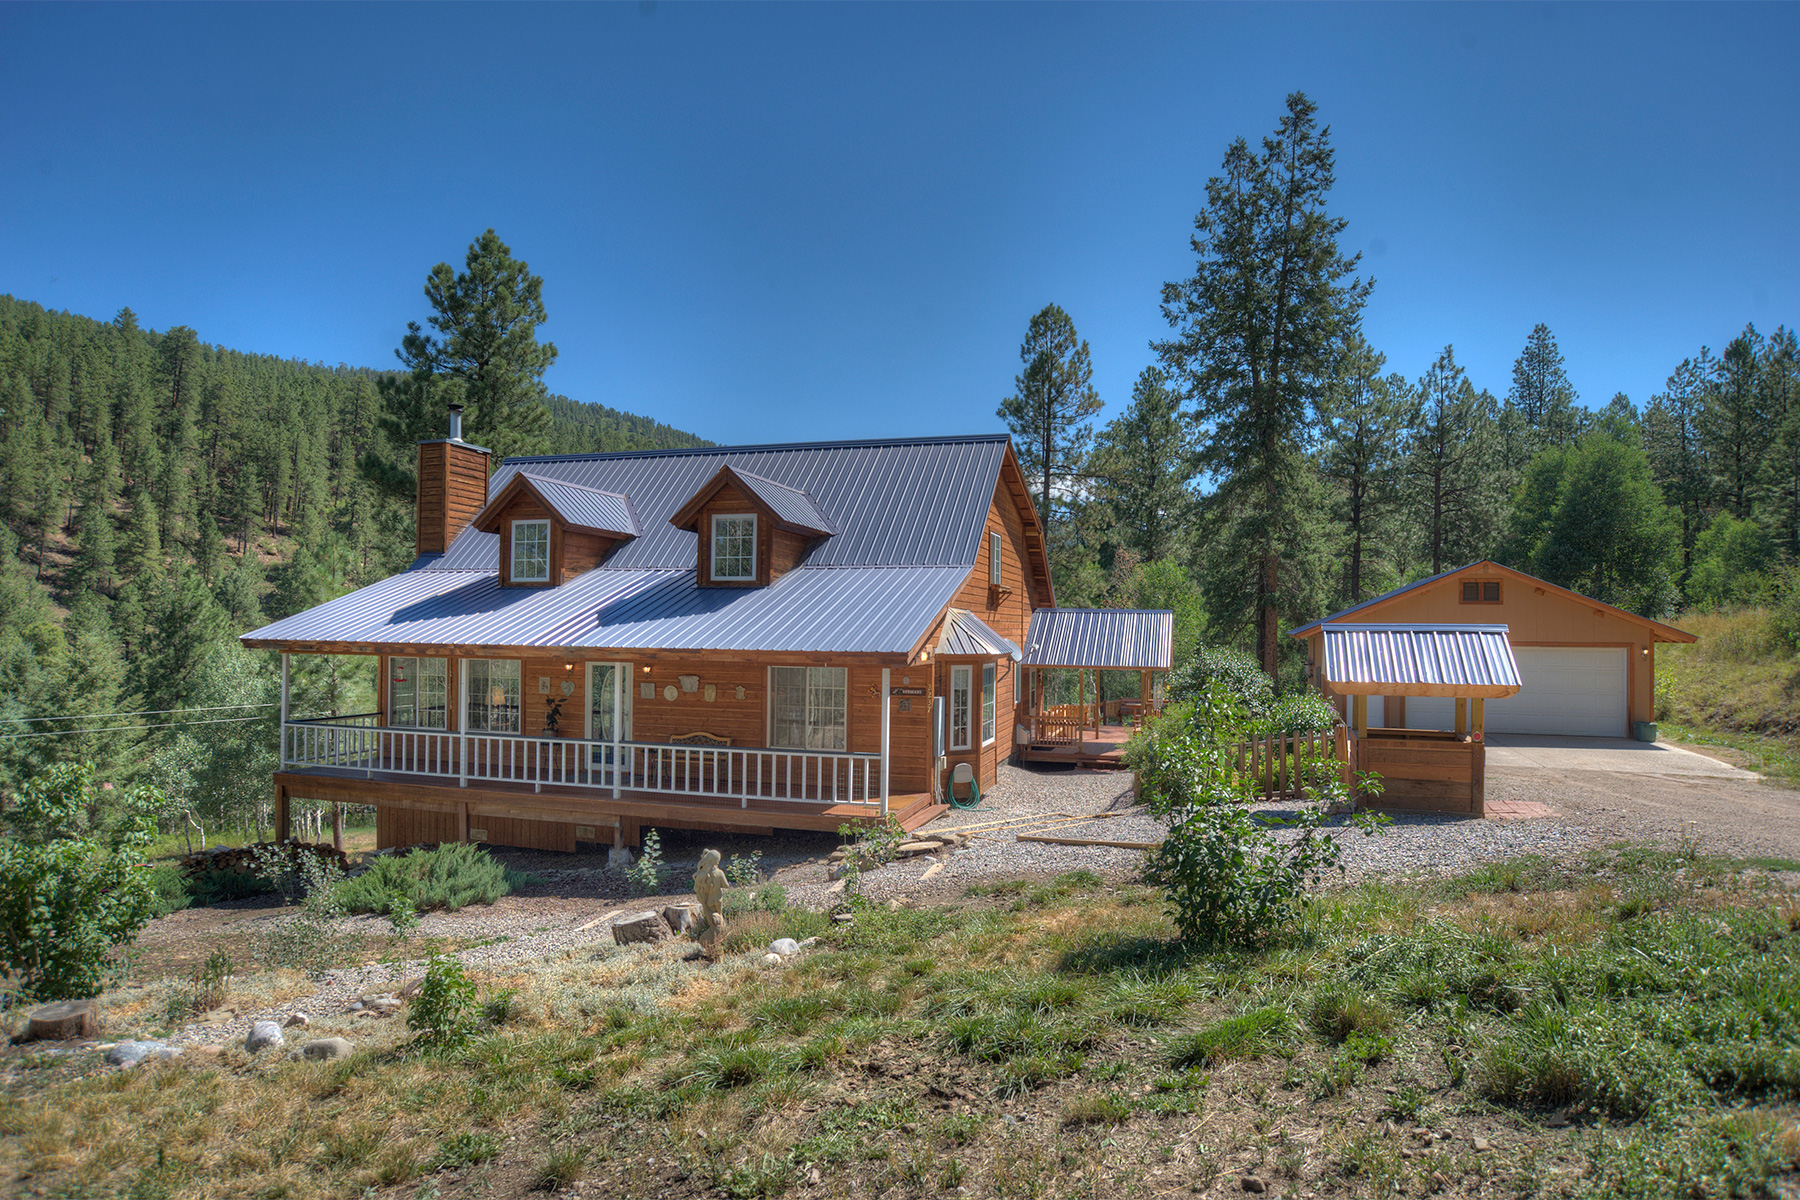 Single Family Home for Sale at 2237 Bear Creek Canyon Bayfield, Colorado 81122 United States